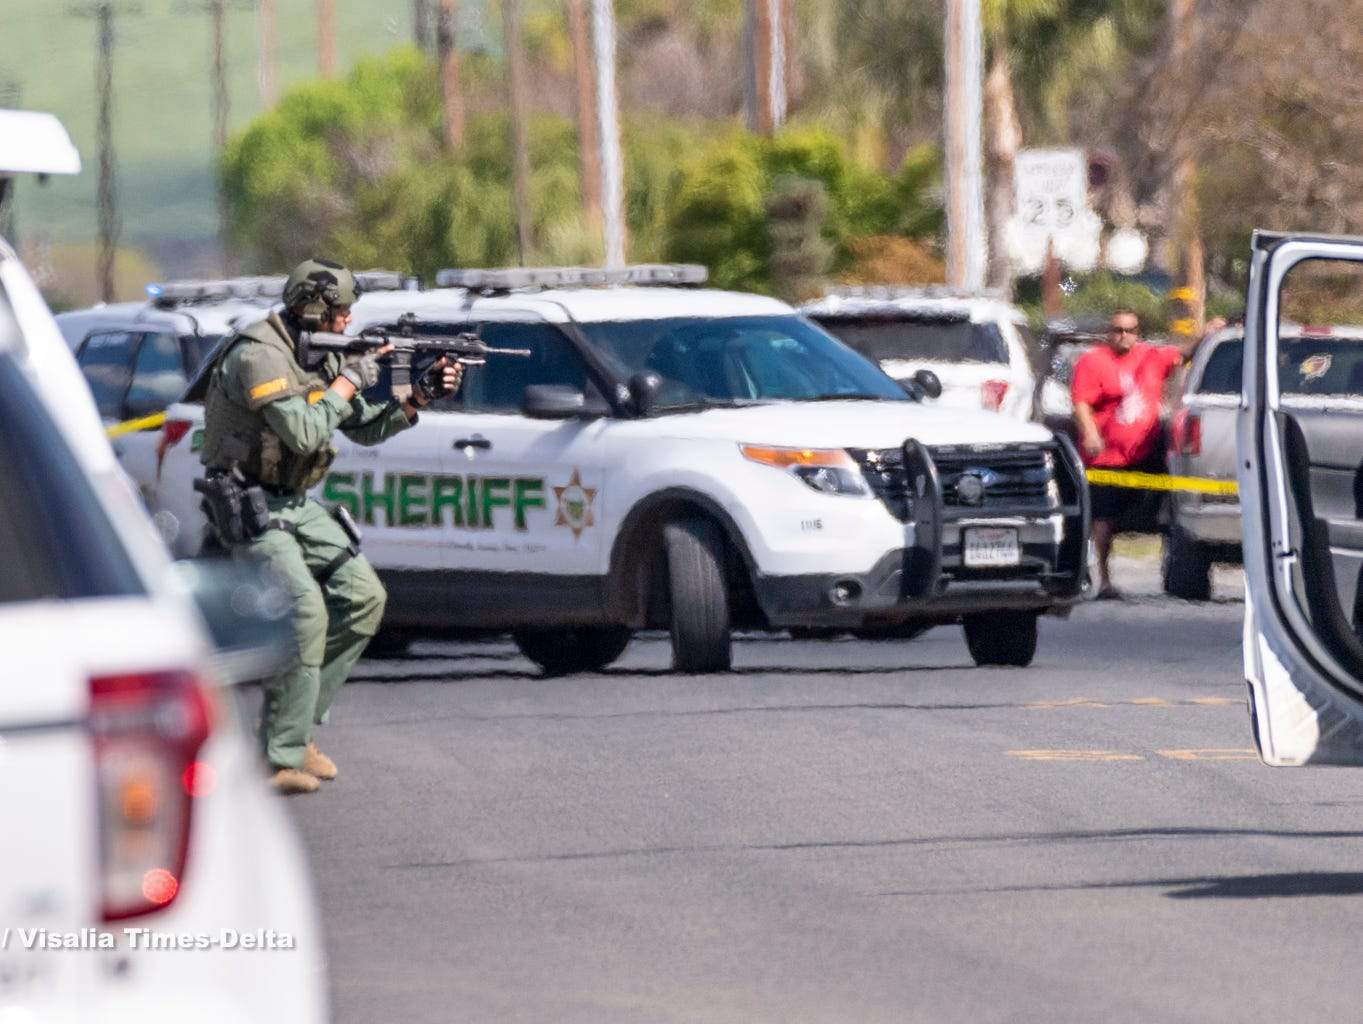 Deputies were called to a home on Road 404 in Cutler near Mueller Street around 1 p.m. on Friday. The deputies were told a man with a knife ran into a neighbor's home and threatened to kill the residents. Eventually Tulare County Sheriff Department's SWAT members deployed a robot into the house and determined the man to be unarmed, clearing the way for deputies to enter and take the man into custody about 4 p.m.